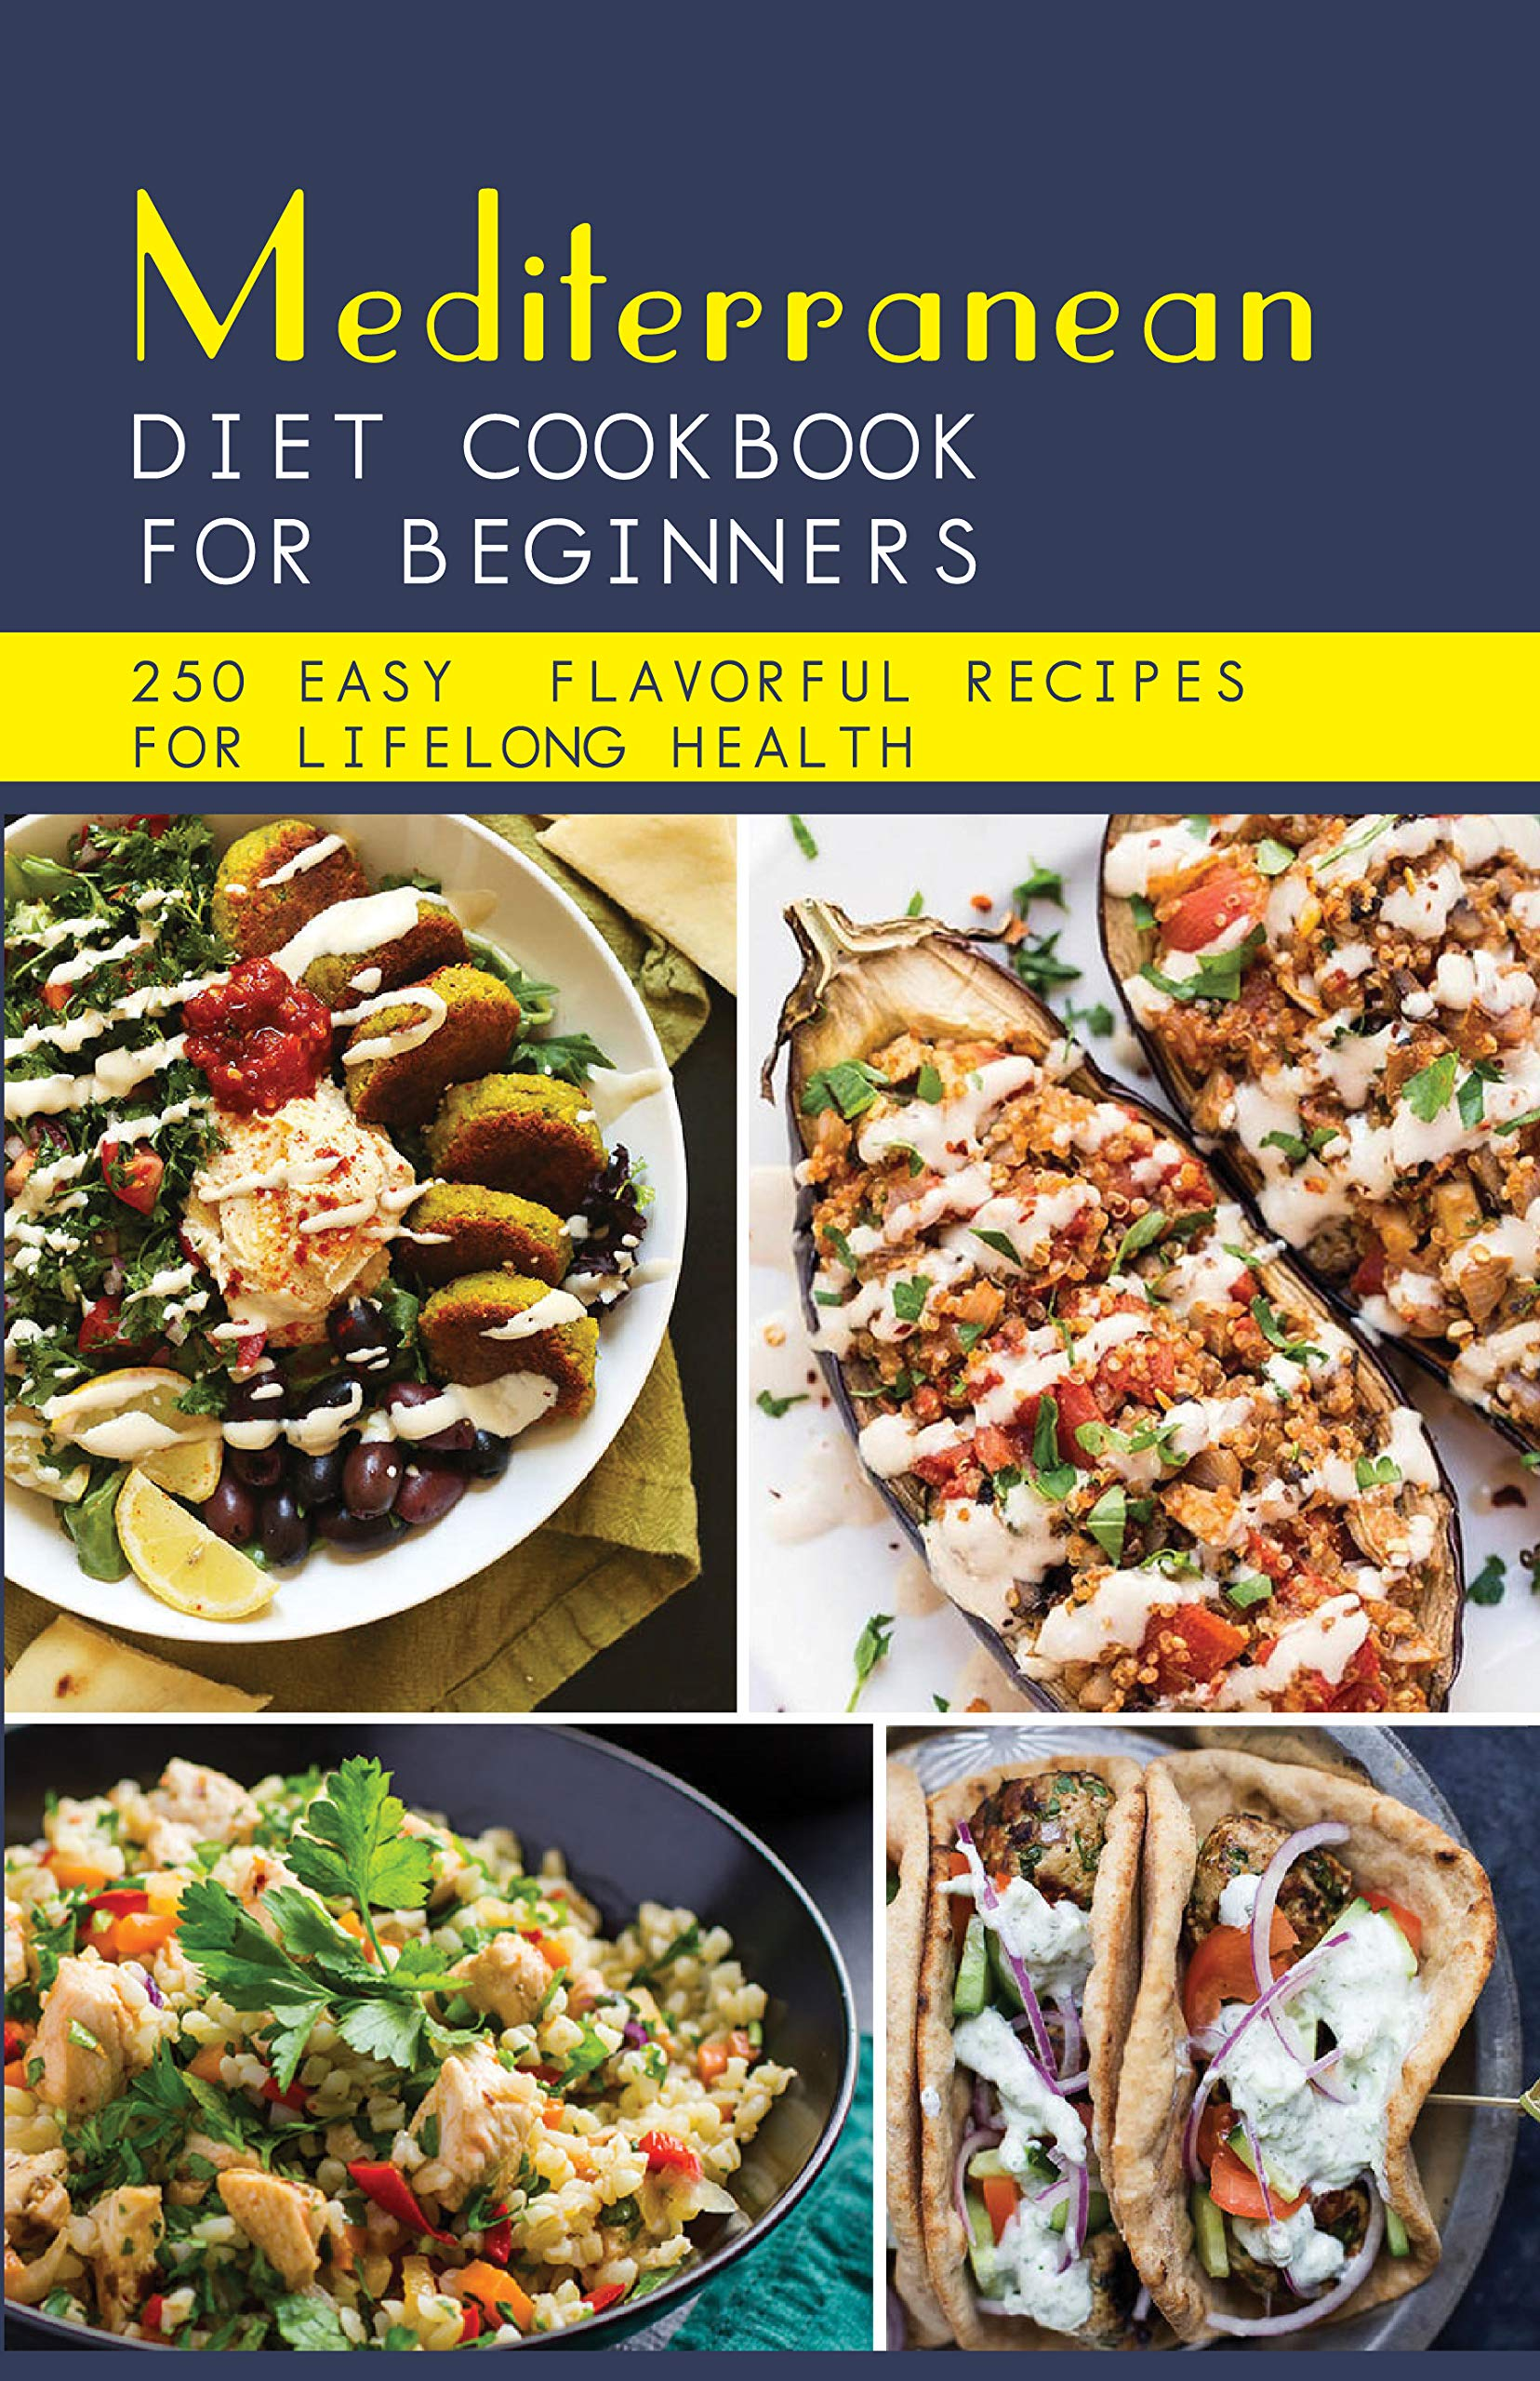 Mediterranean Diet Cookbook For Beginners: 250 Easy, Flavorful Recipes For Lifelong Health: Simple Recipes Cookbook